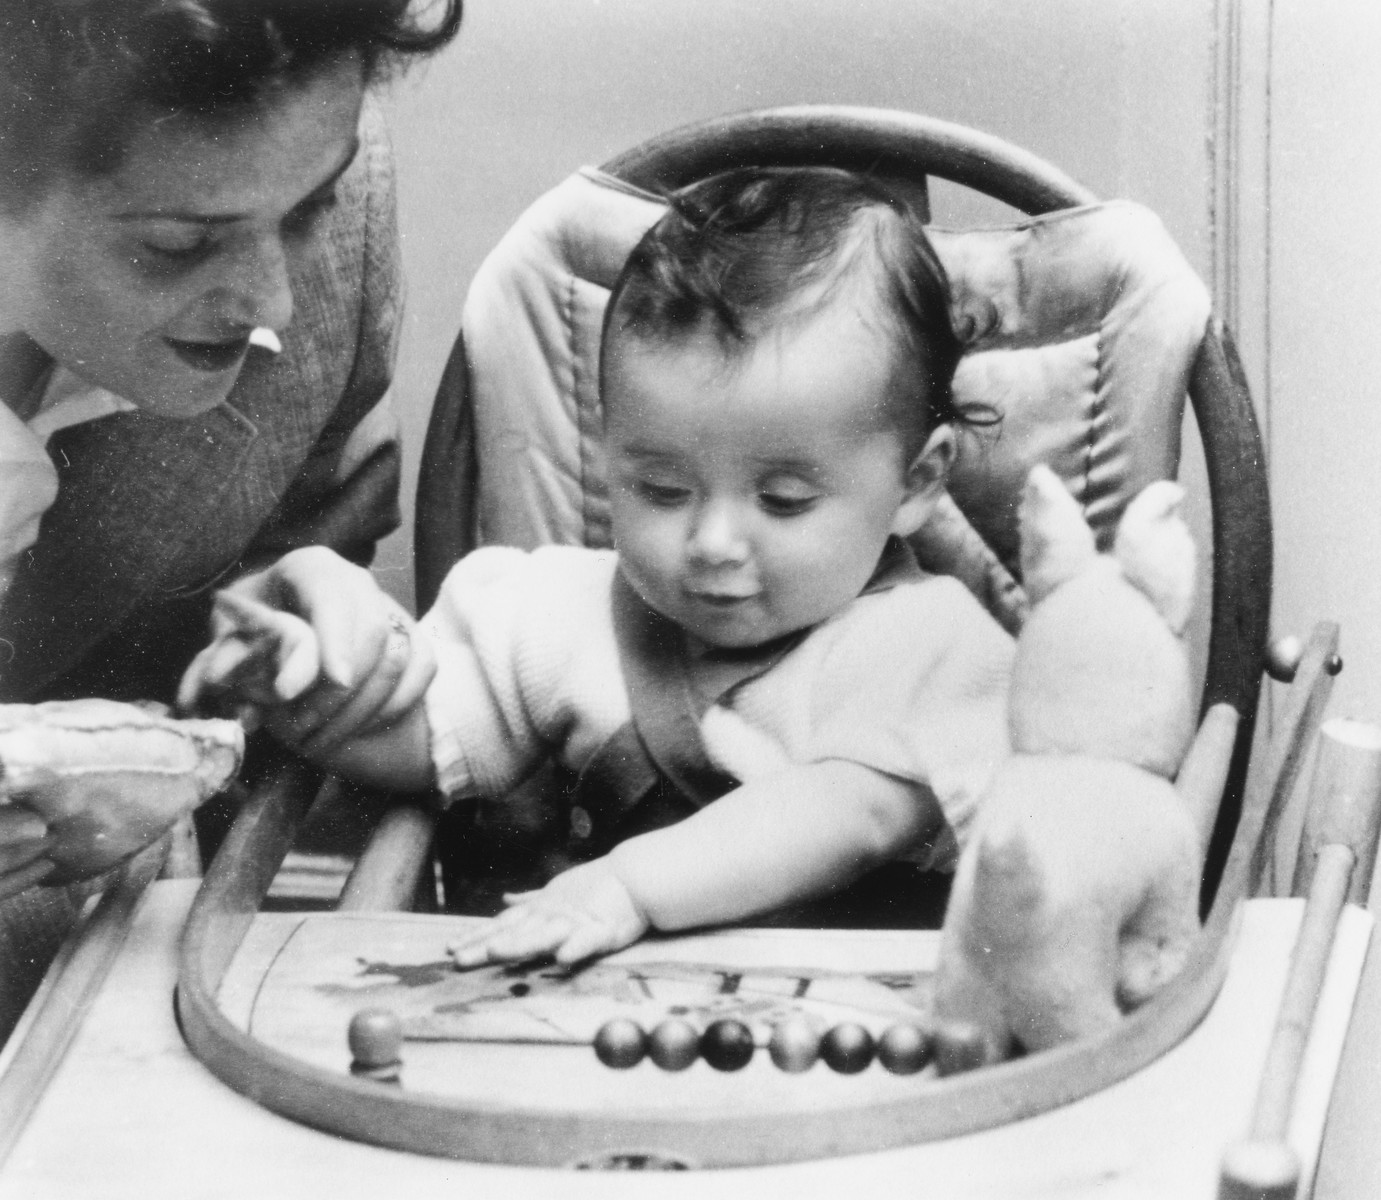 A Dutch-Jewish mother plays with her young baby seated in a high chair.  Pictured are Emmy and Robert Krell.